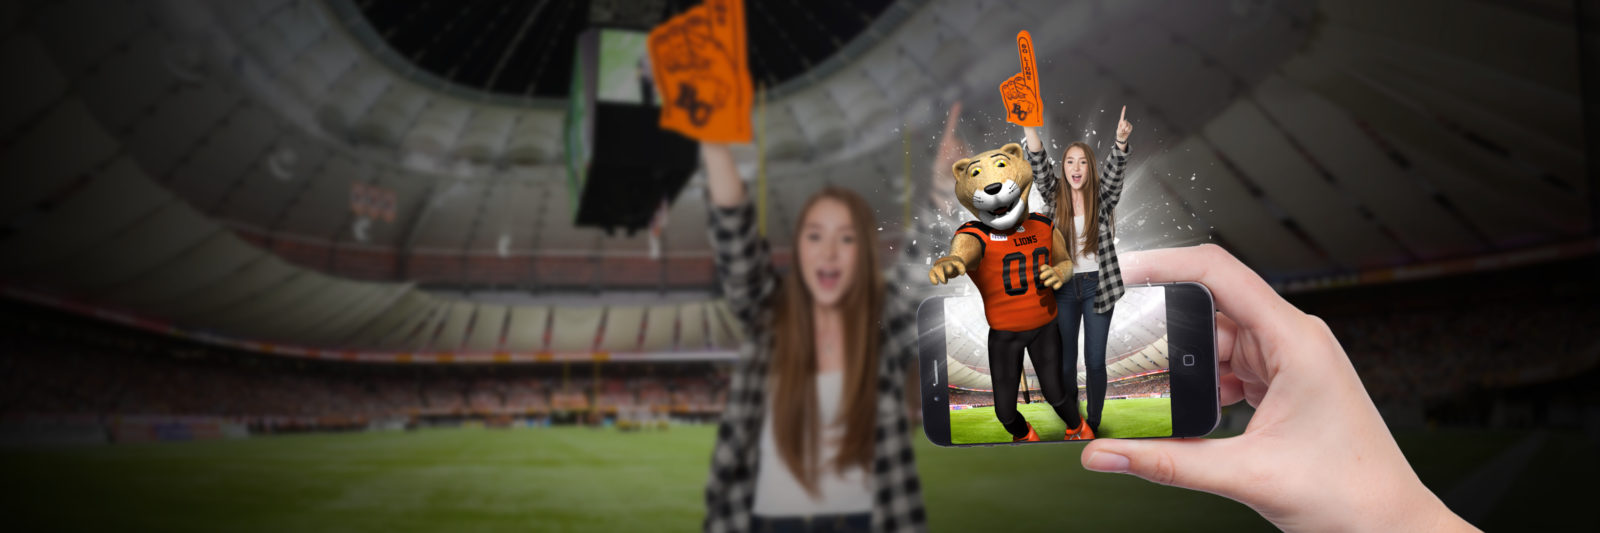 c0a0e0245 BC LIONS EXP  THE ULTIMATE FOOTBALL APP - BC Lions